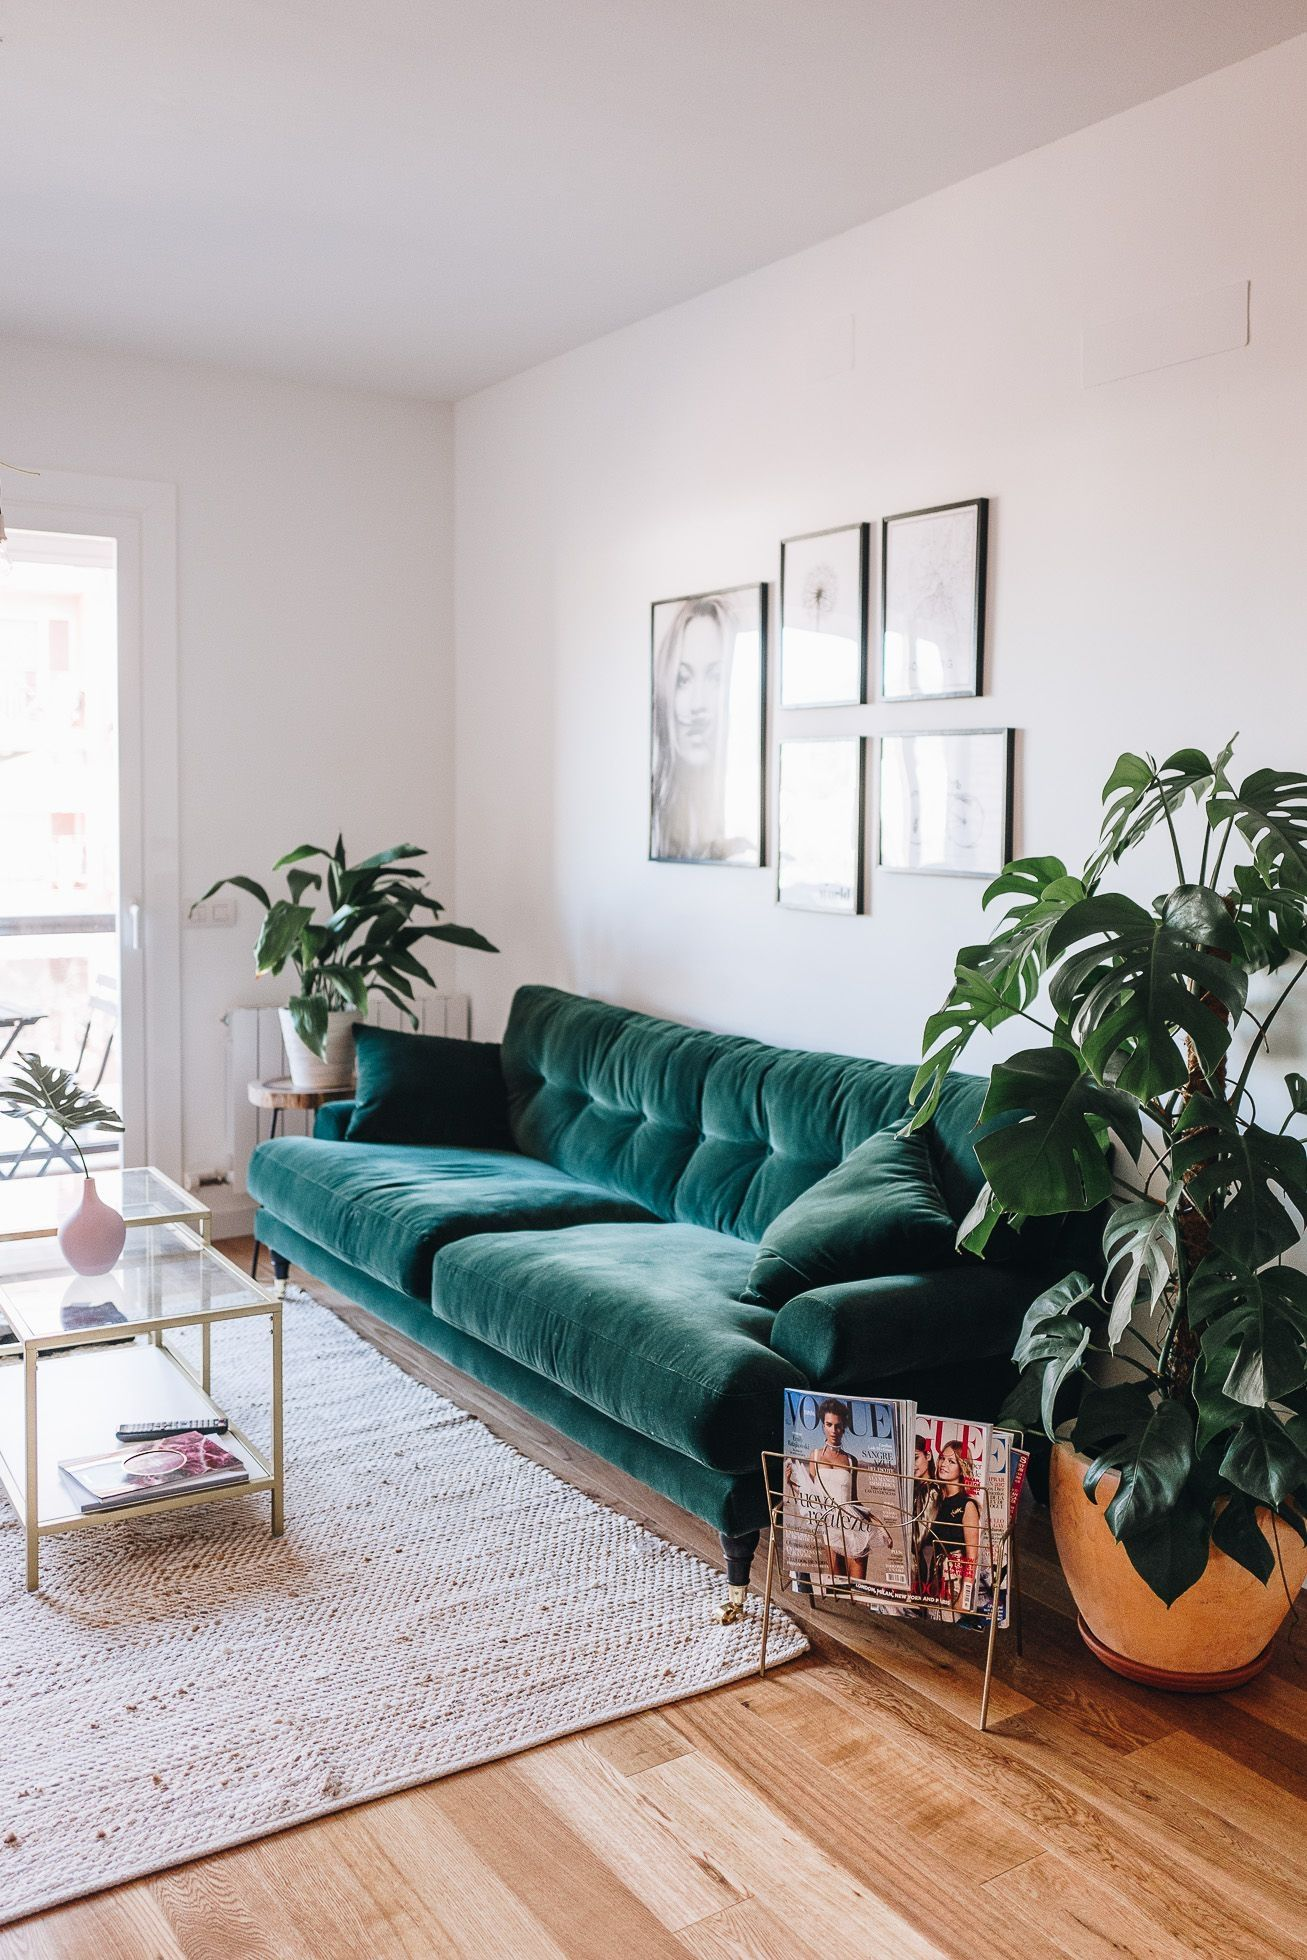 Find Inspiration About Green Sofa Living Room Ideas Green Sofa Living Roo Small Apartment Decorating Living Room Living Room Decor Apartment Elegant Home Decor